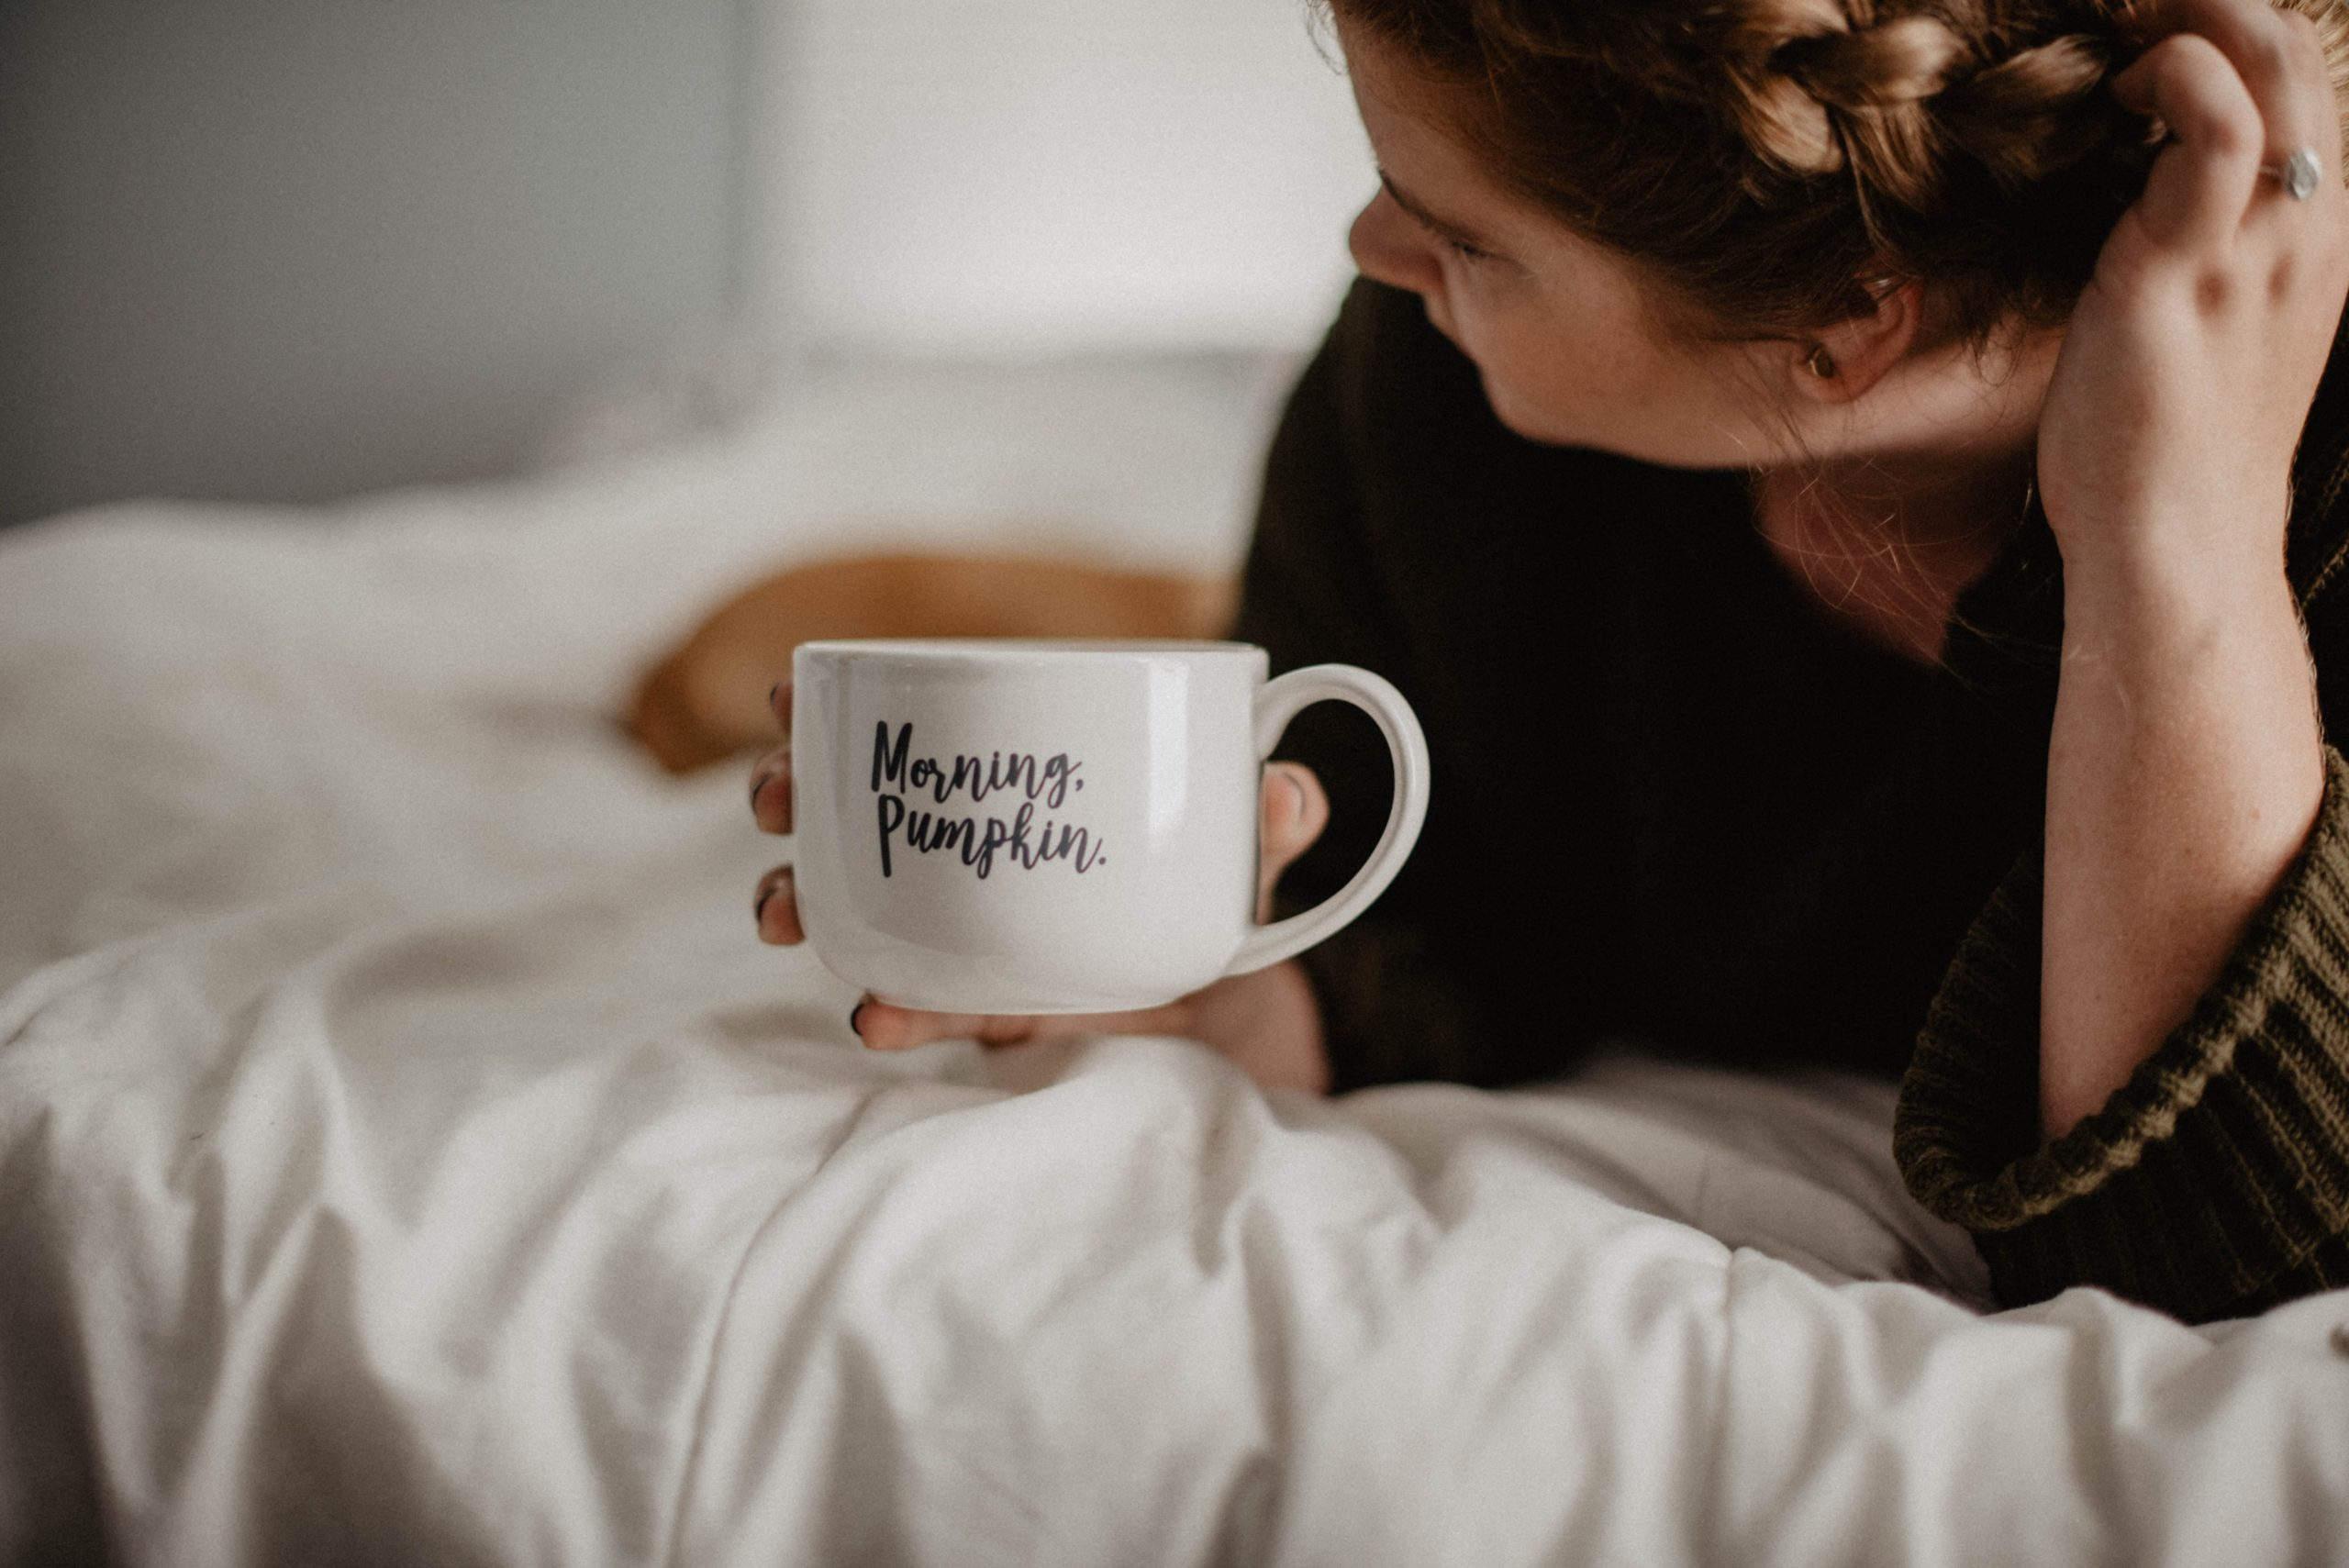 Stuggling girl drinking Coffee. Counseling in Katy, Texas can help your family. Find help with family therapy in Katy, tx. Therapy for families may help your loved ones find peace among each other. Contact Locke Counseling and Consulting today!